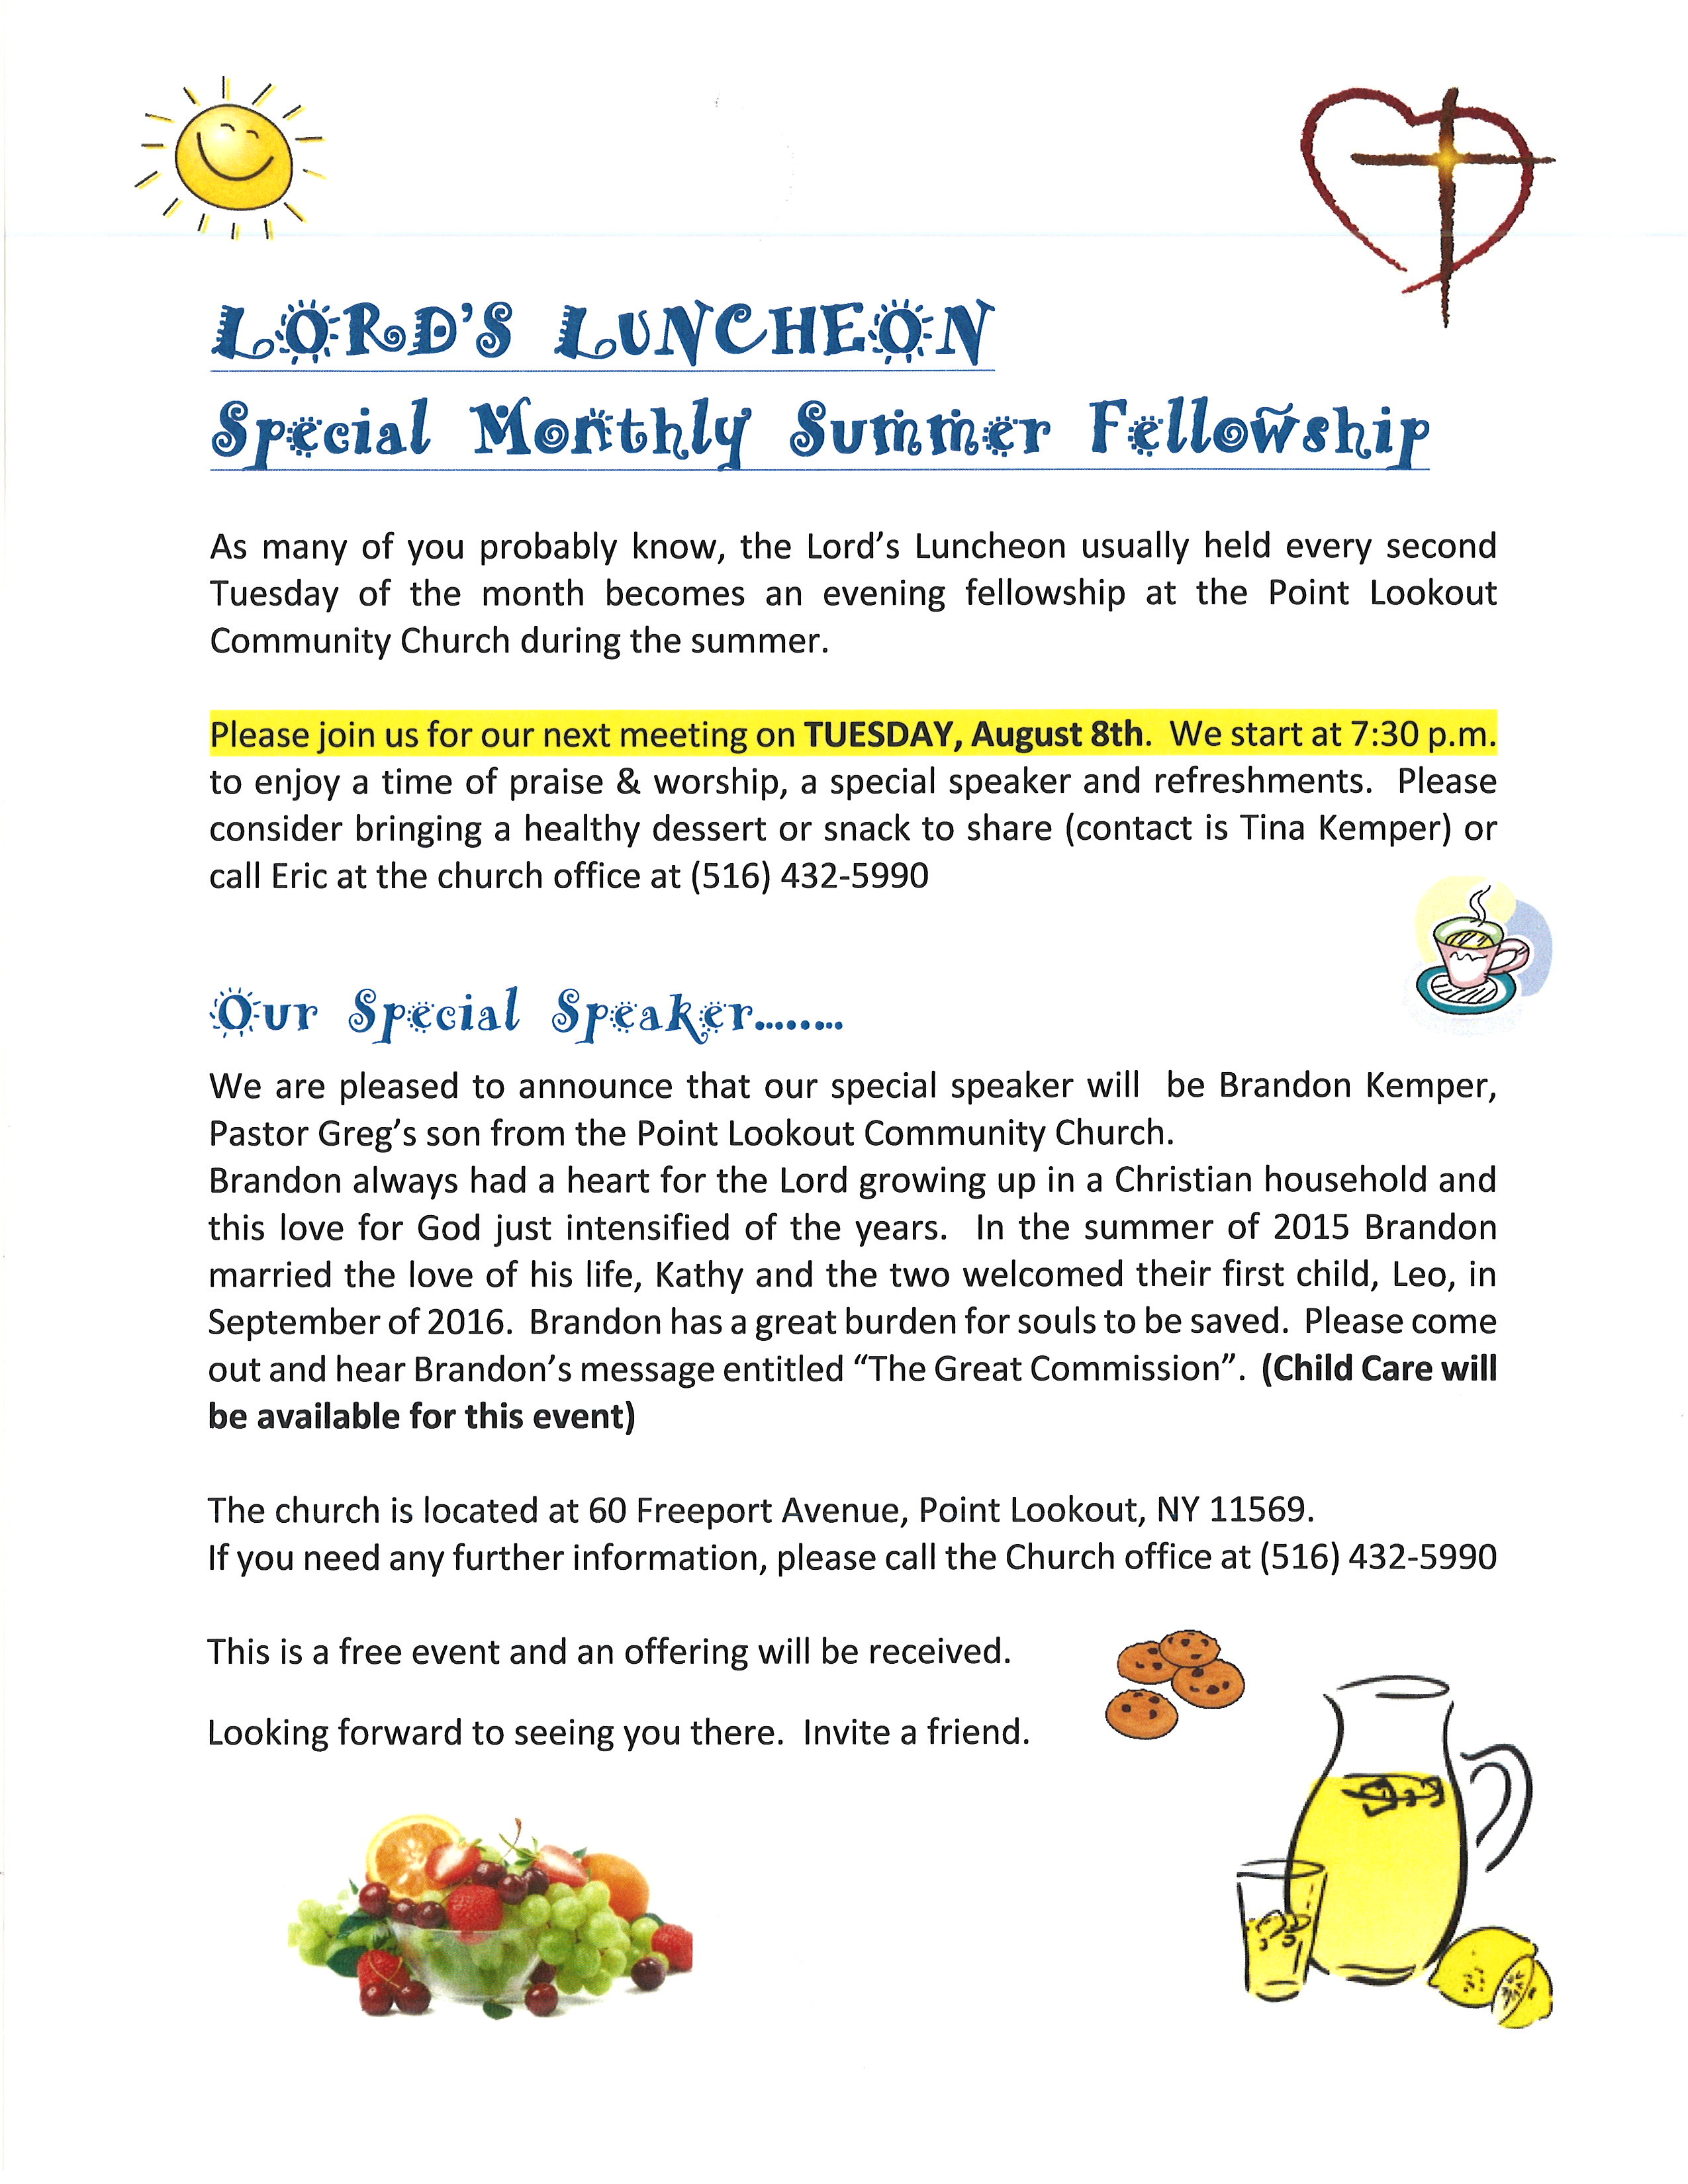 Lord's Luncheon, Tue, August 8th, 2017